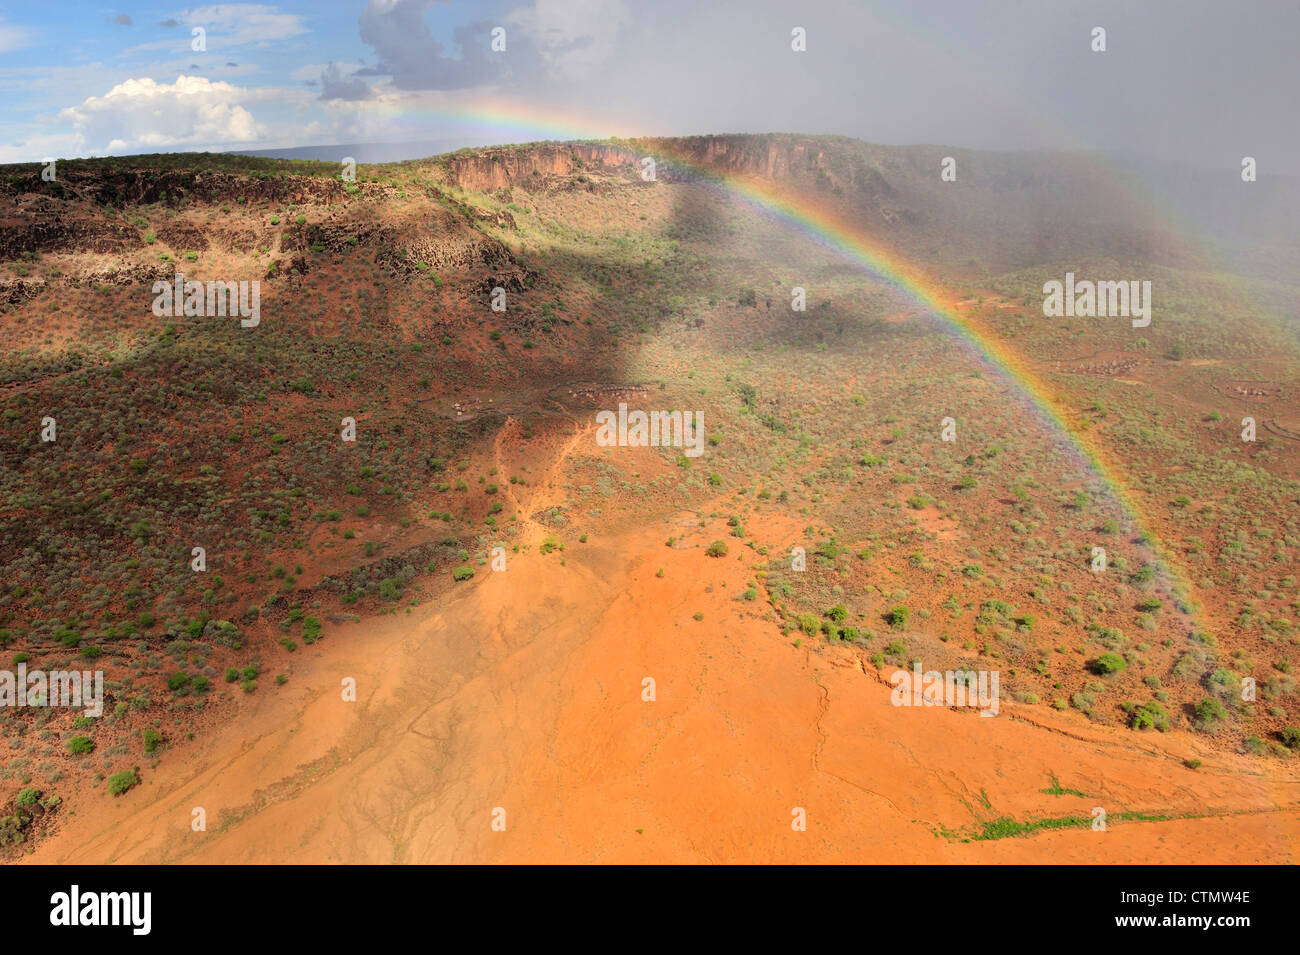 Rainbow after the rains, Taposa villages in Kapoeta district, Republic of South Sudan - Stock Image